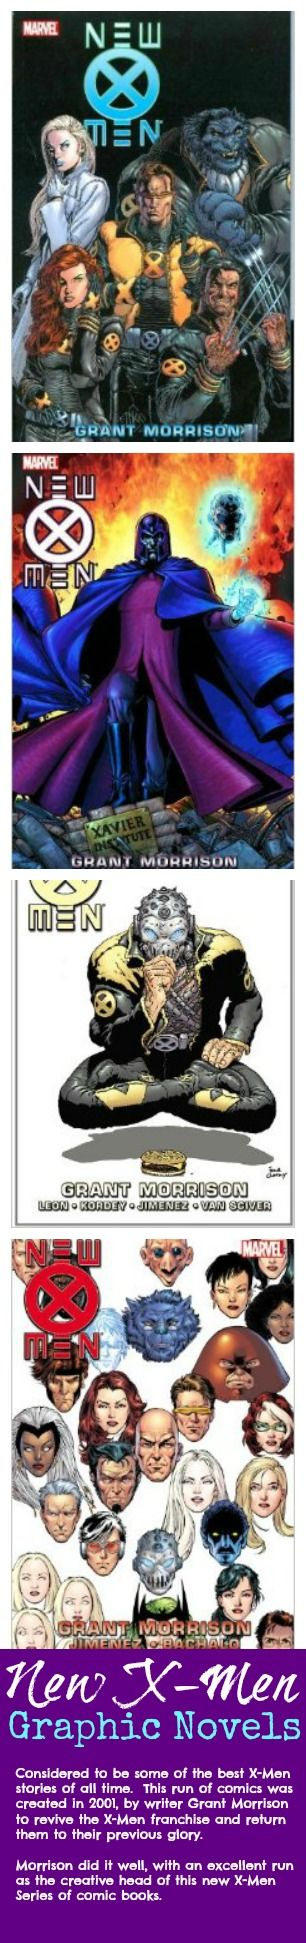 Best X-men Graphic Novels  Considered to be some of the best X-Men stories of all time.  This run of comics was created in 2001, by writer Grant Morrison to revive the X-Men #comicbooks #superheroes #wolverine #xmen